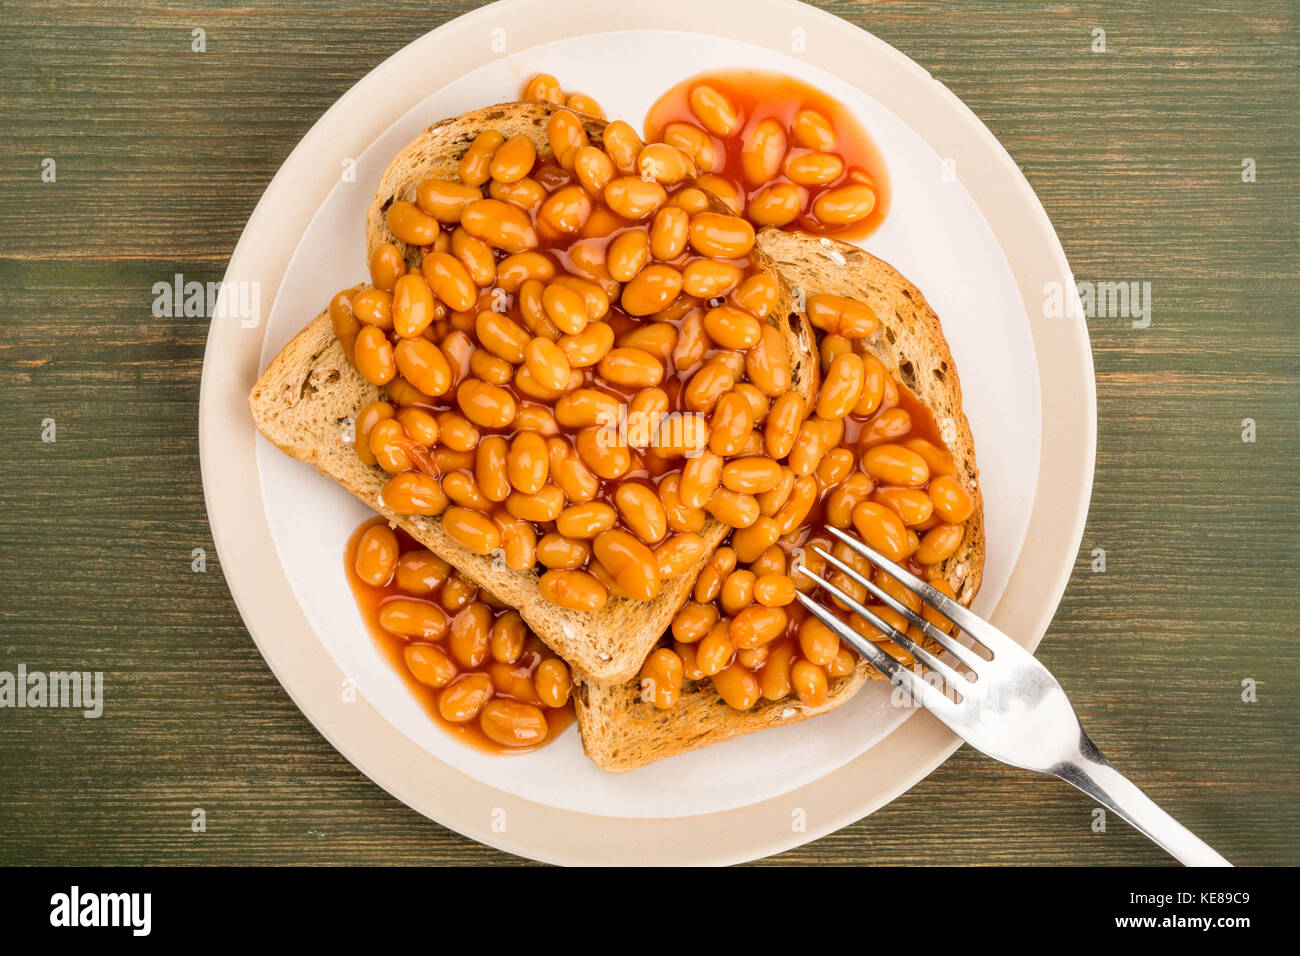 Baked Beans in Tomato Sauce on Toast On A Green Wooden Background - Stock Image